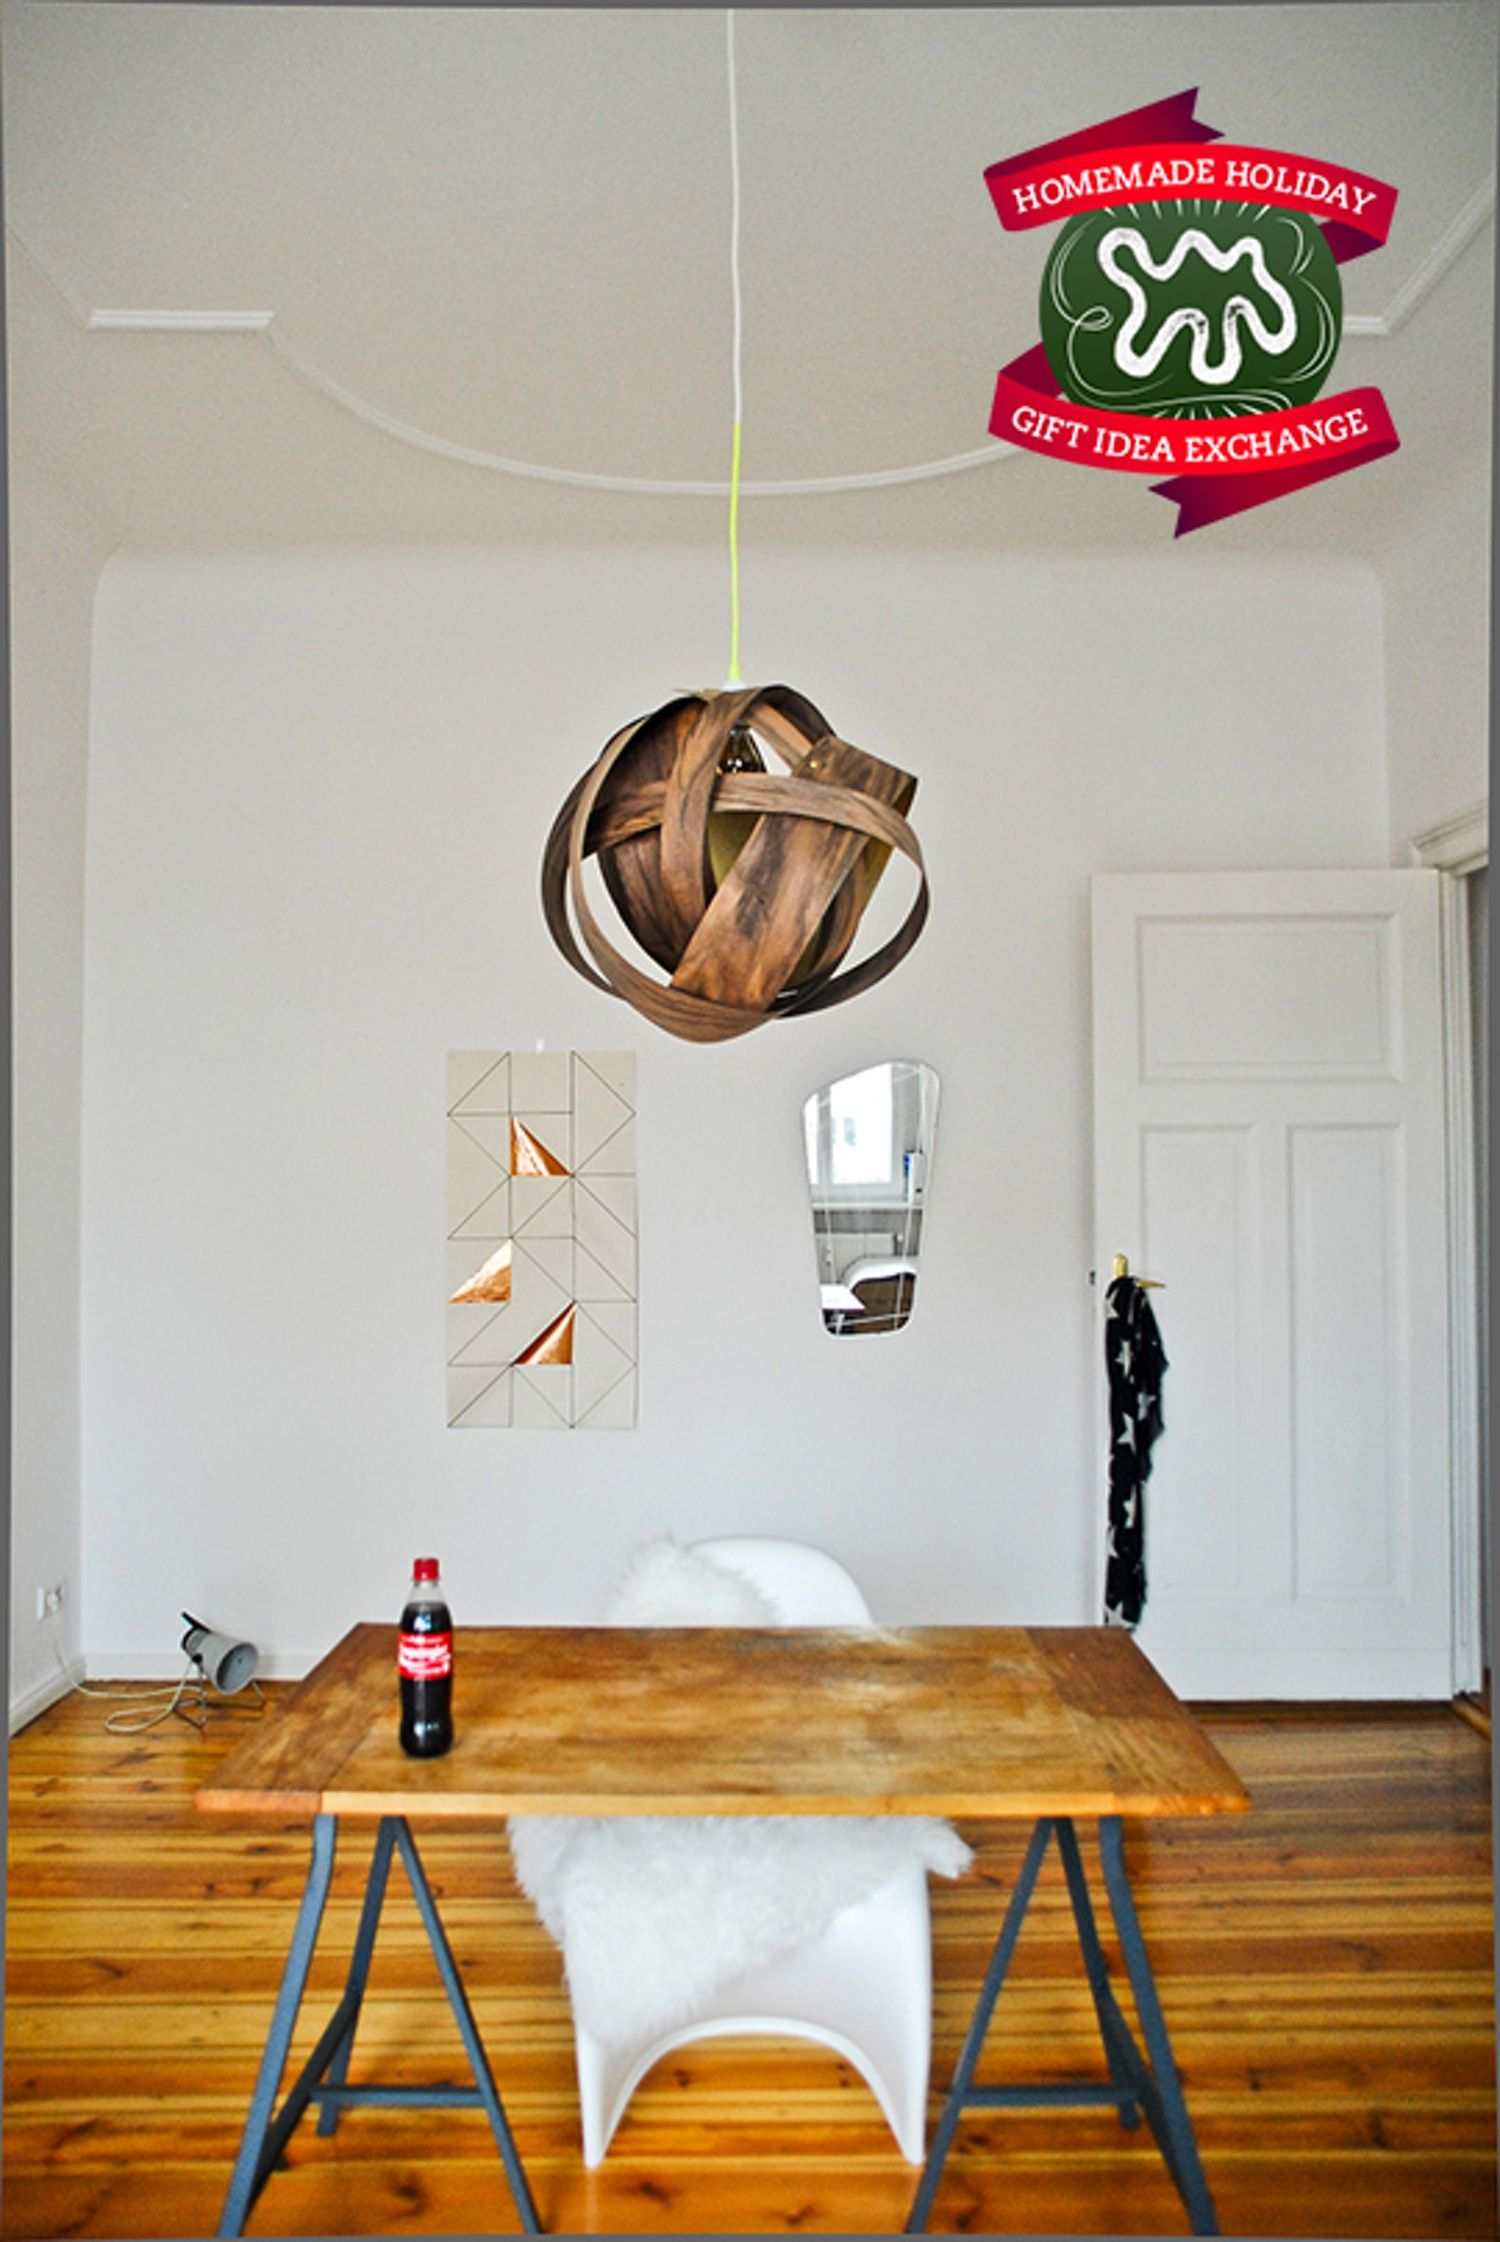 Make This Homemade Holiday Gift Wood Veneer Pendant Lamp Homemade